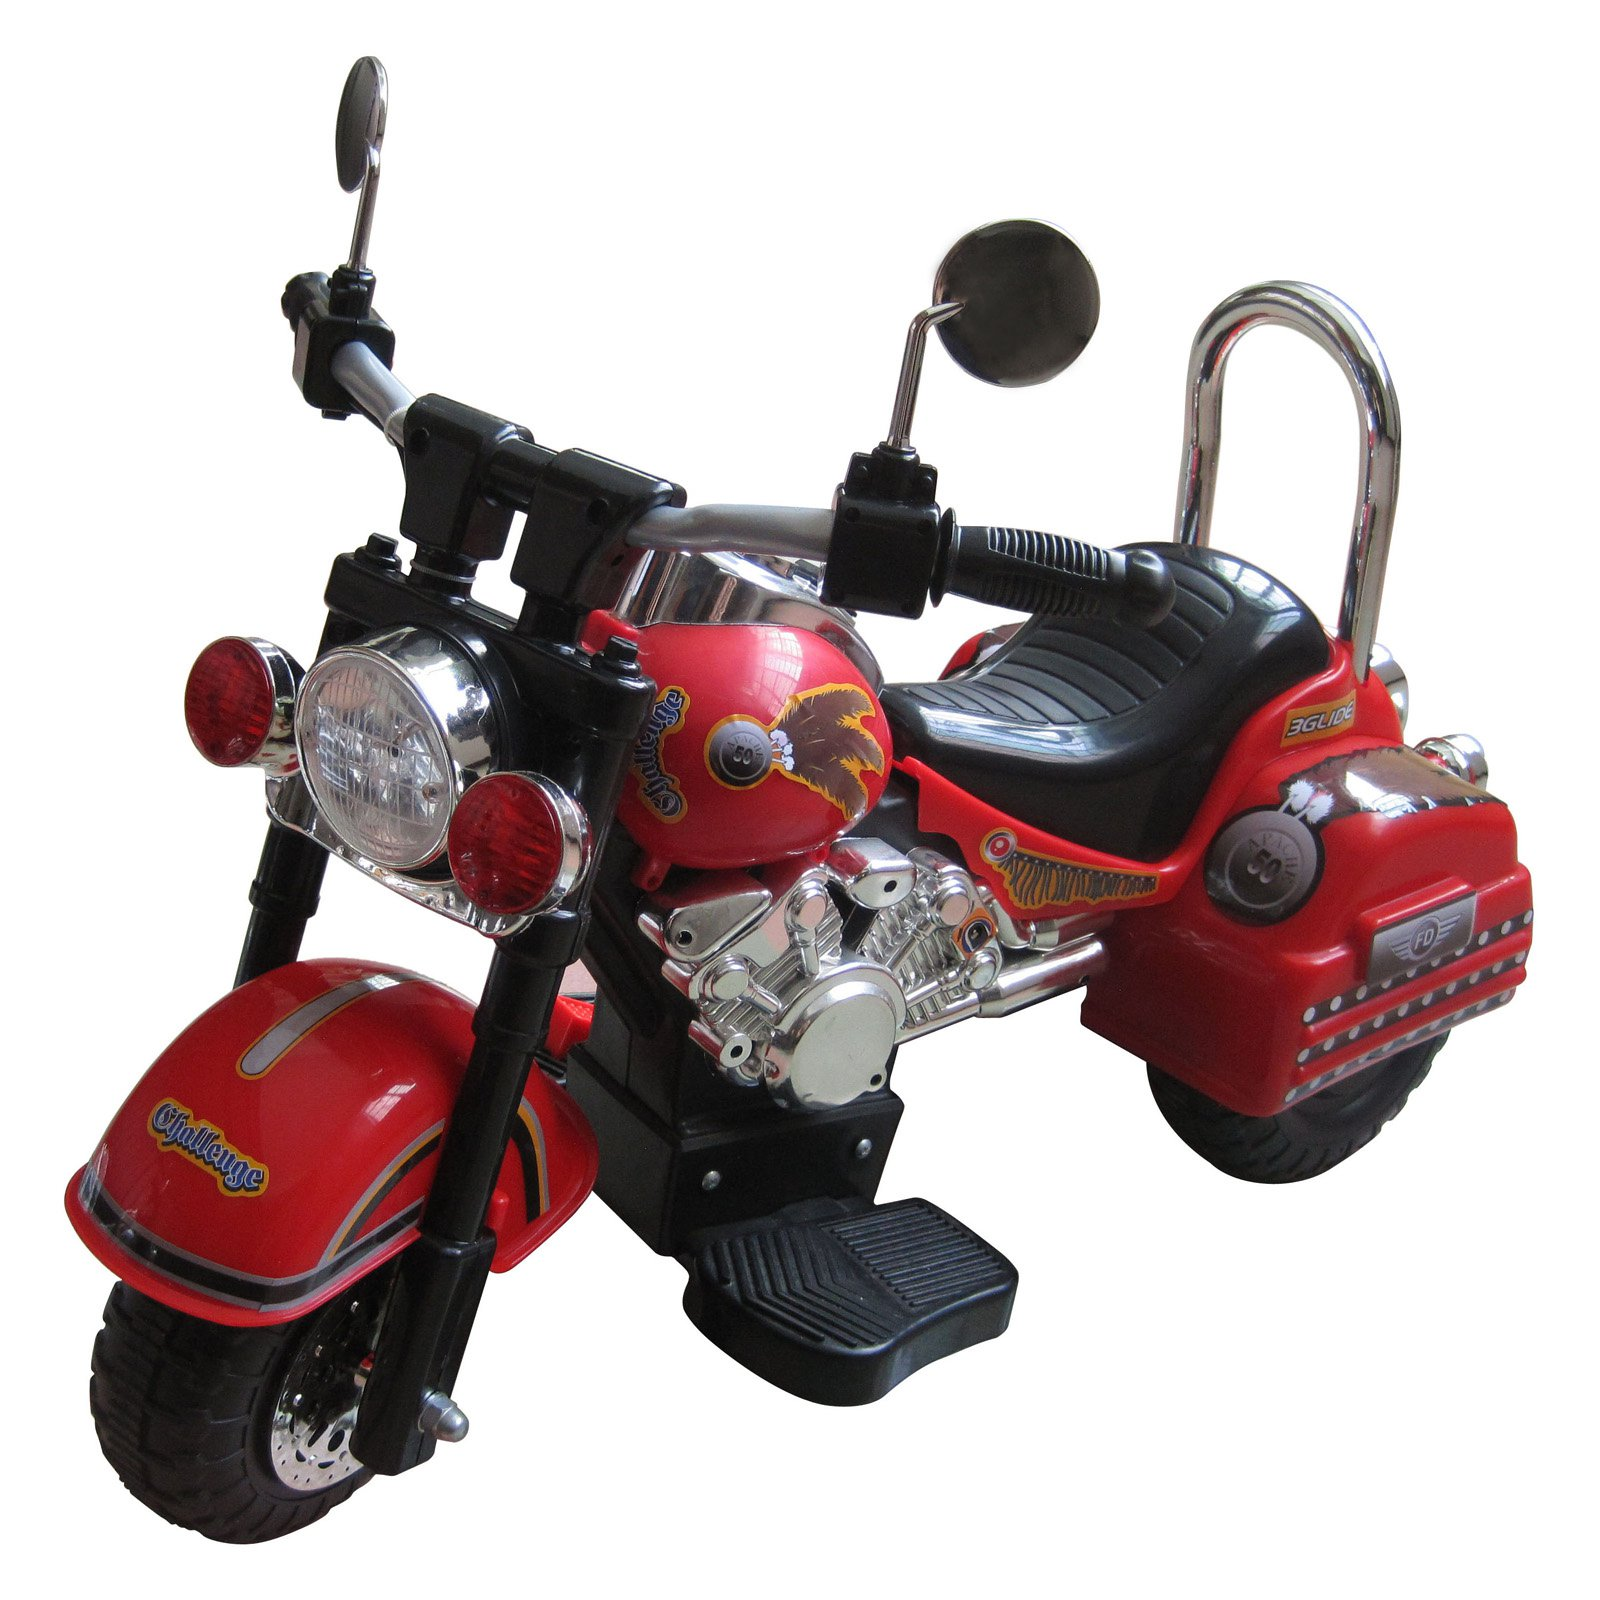 Merske Harley Style Motorcycle Battery Powered Riding Toy Red by Merske LLC